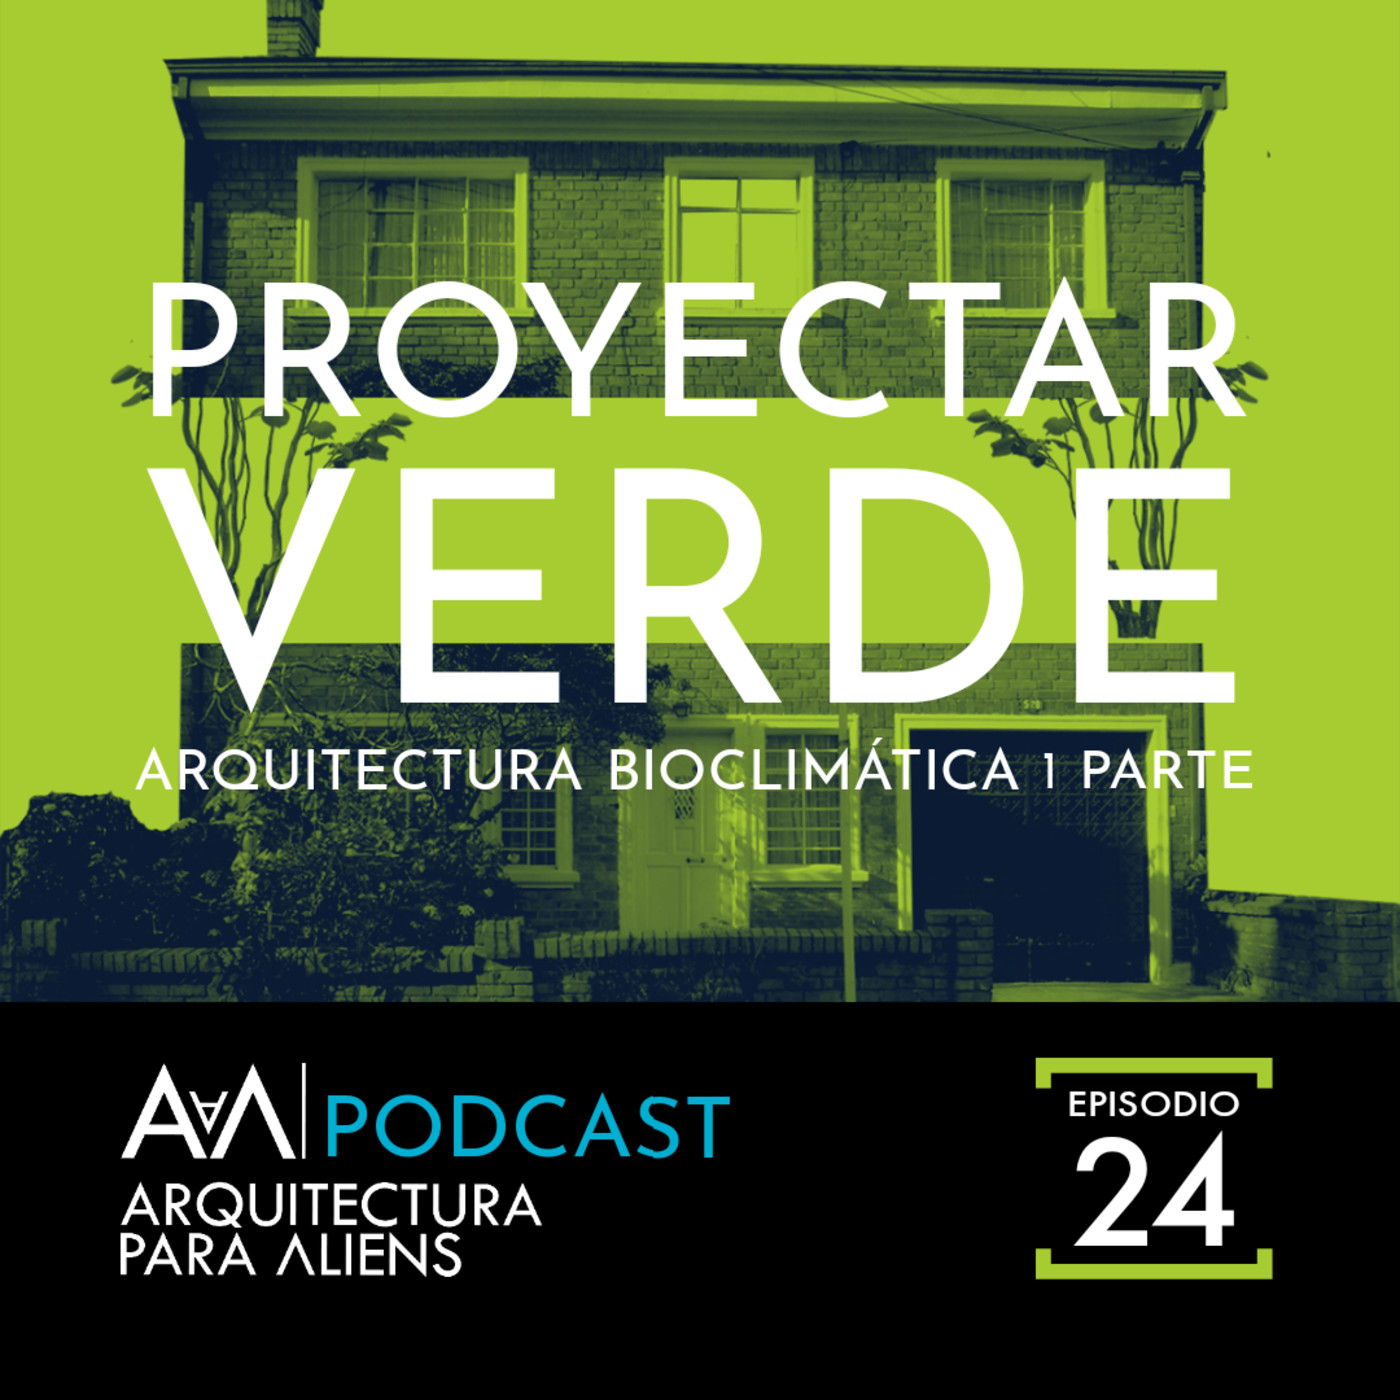 EP24 Proyectar Verde : Arquitectura Bioclimática